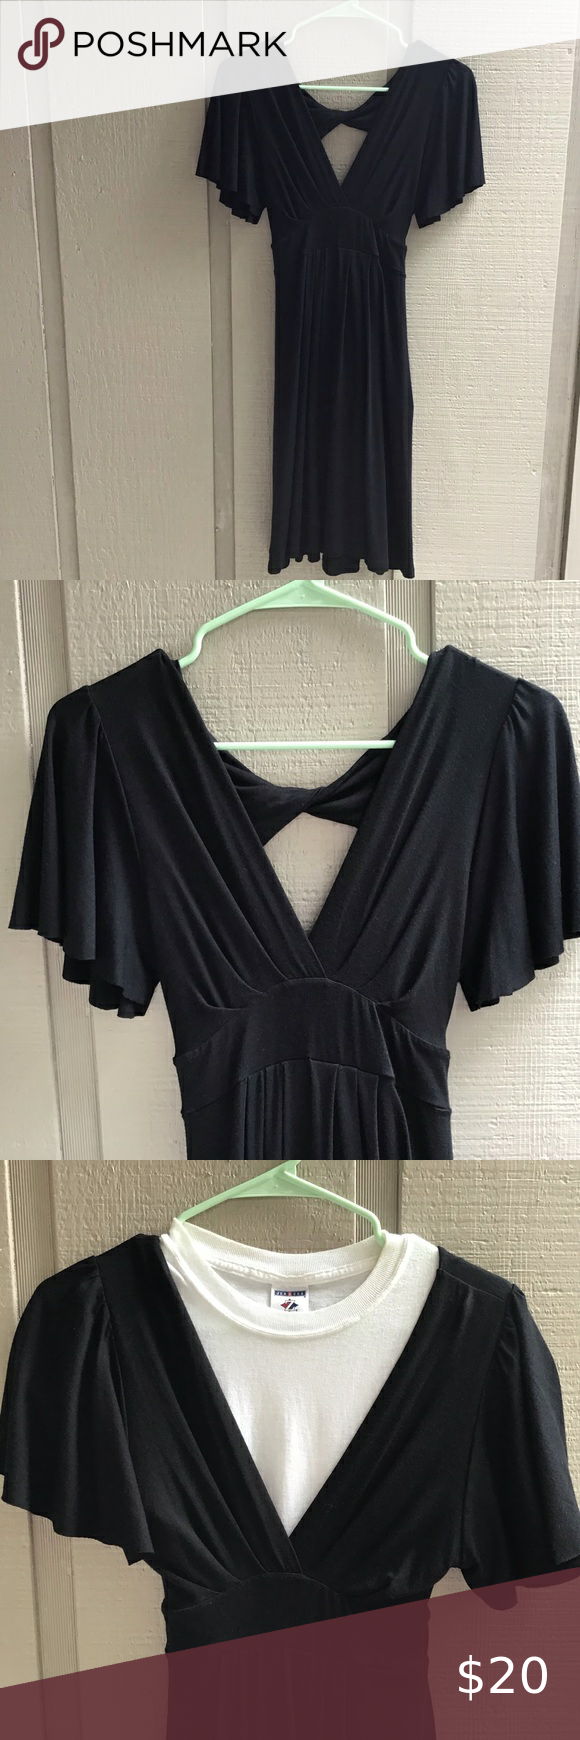 Nwt Small Black Dress Made In Usa Small Black Dress Black Dress Little Black Dress [ 1740 x 580 Pixel ]